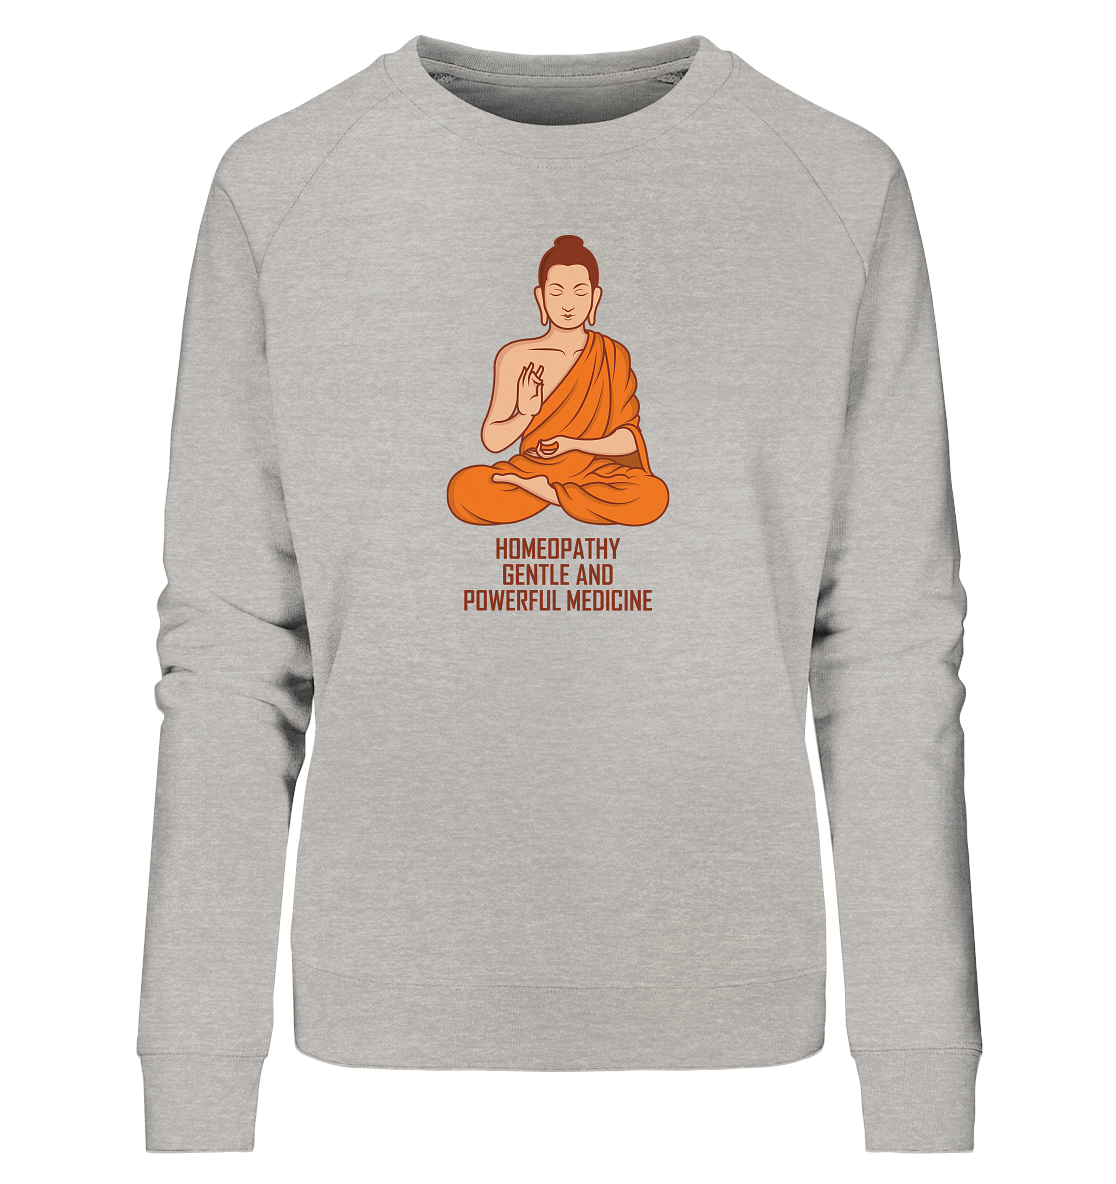 Gentle and powerful medicine - Sweatshirt